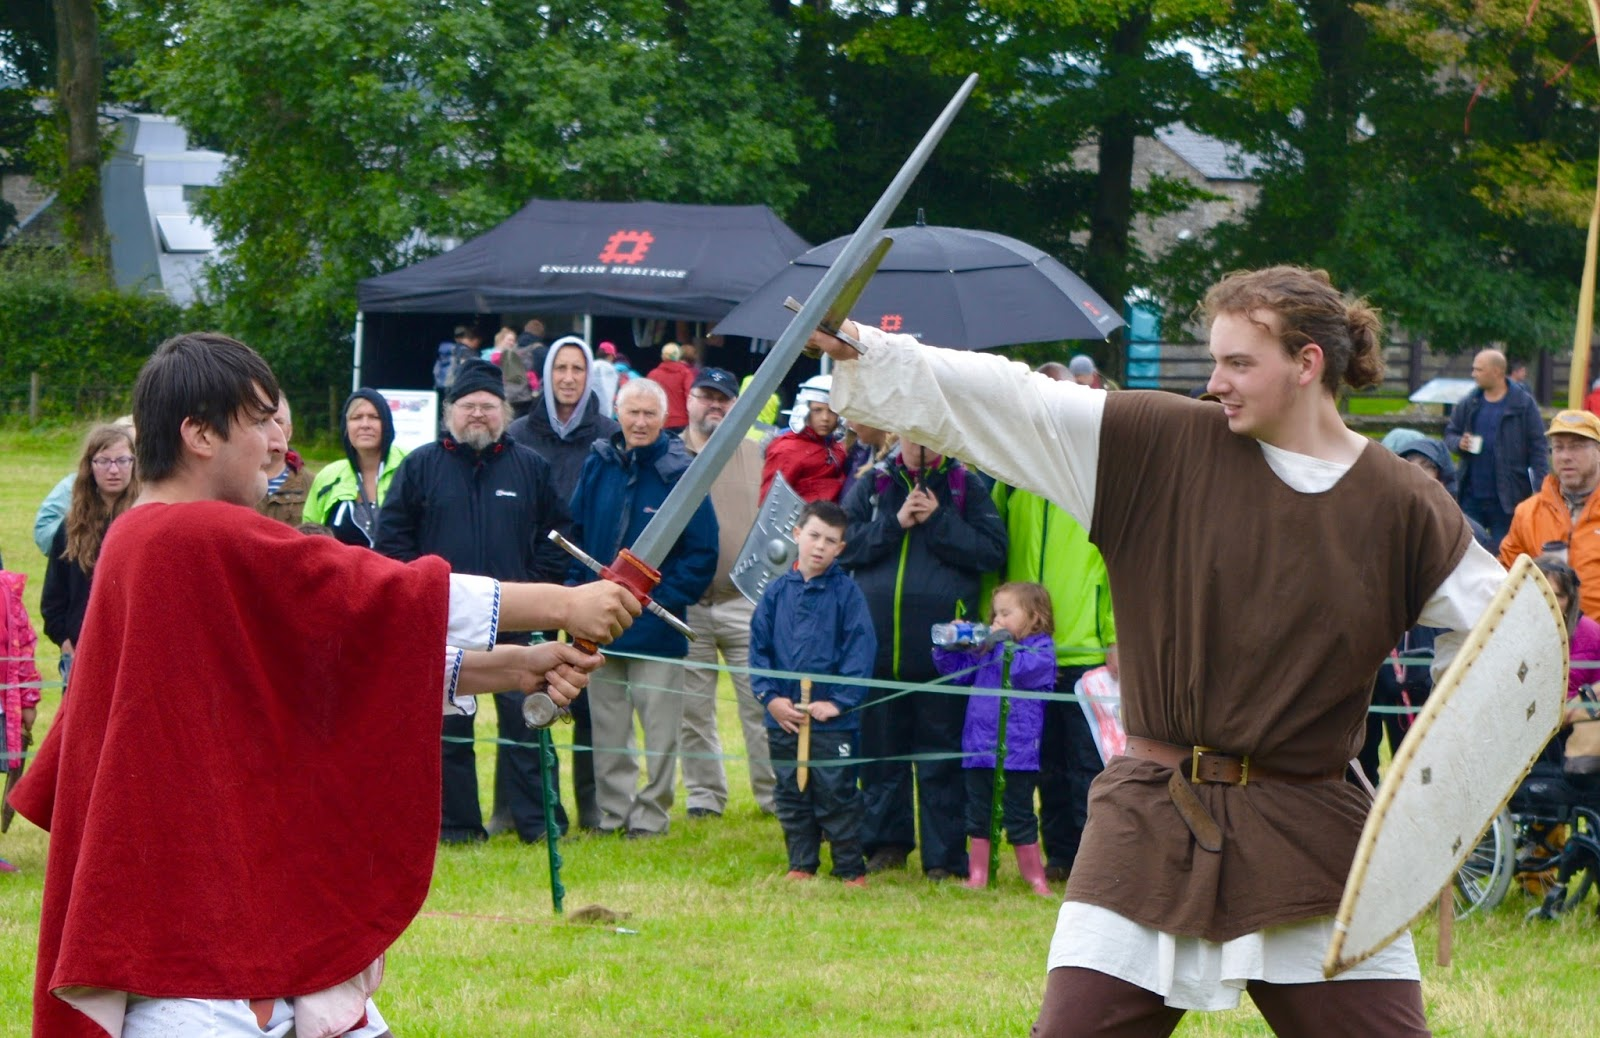 Hadrian's Wall Live 2016 | Birdoswald Roman Fort & Housesteads - A Review - Gladiator battle skills and weapons